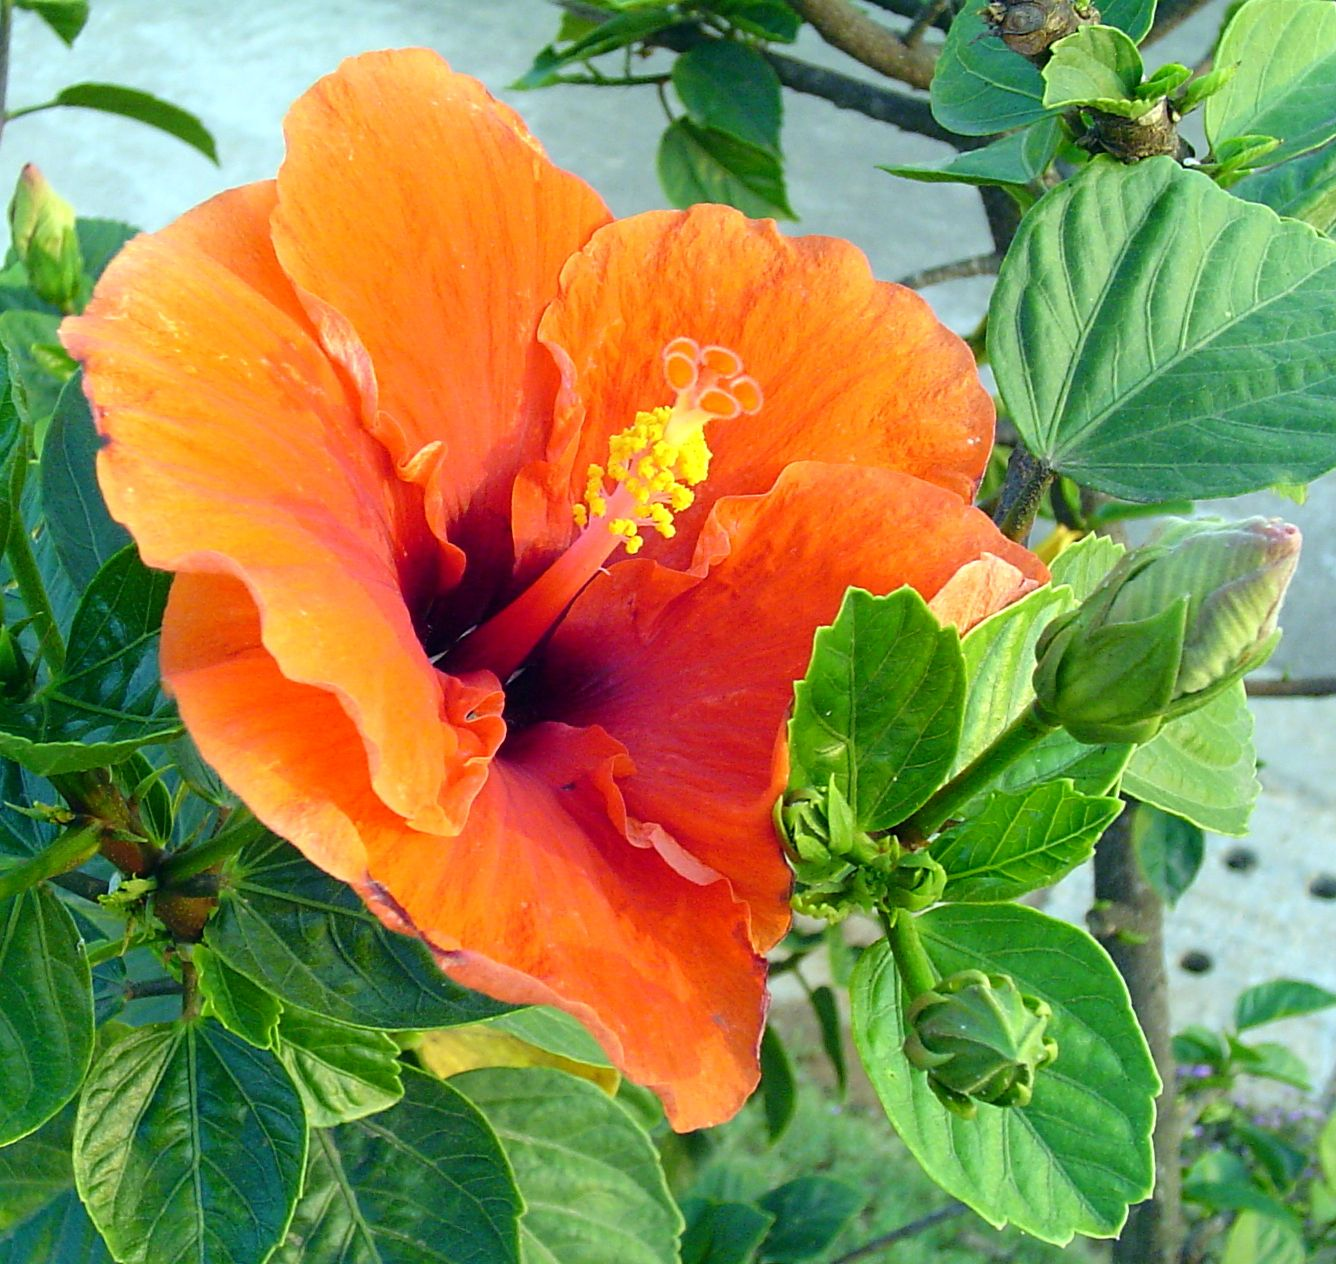 Hibiscus | File:Hibiscus India.JPG   Wikipedia, The Free Encyclopedia